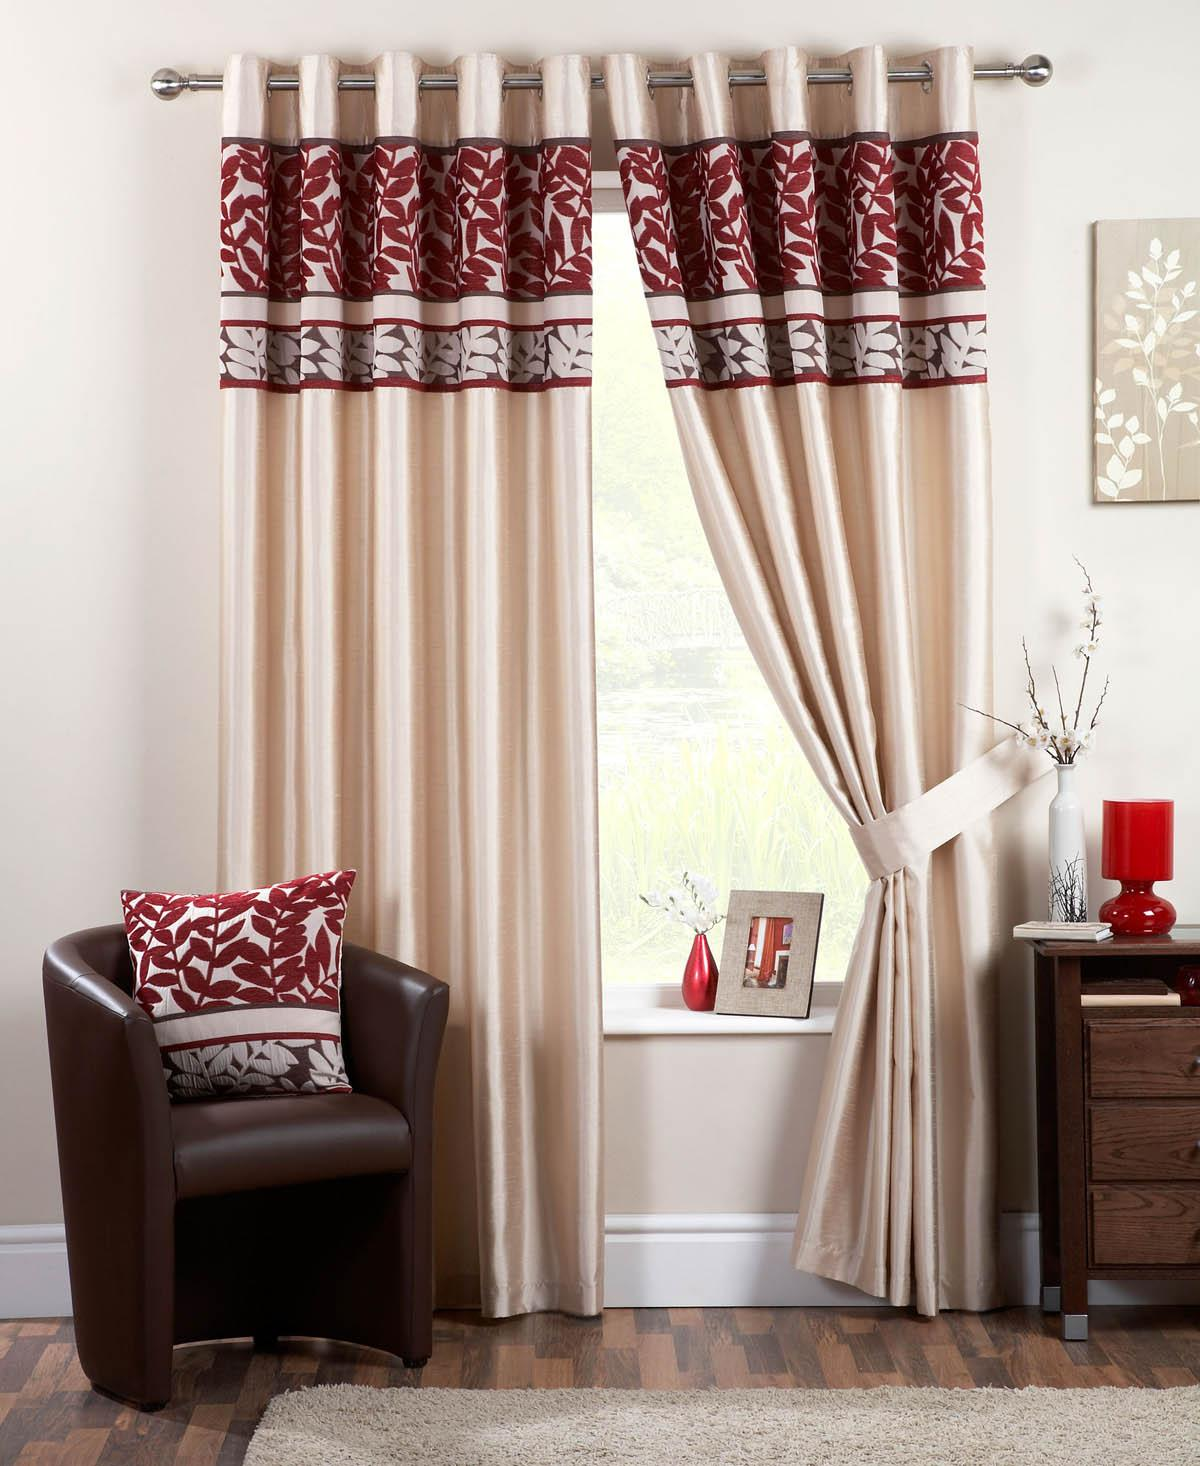 Red patterned curtains - Coniston Ready Made Eyelet Lined Curtains